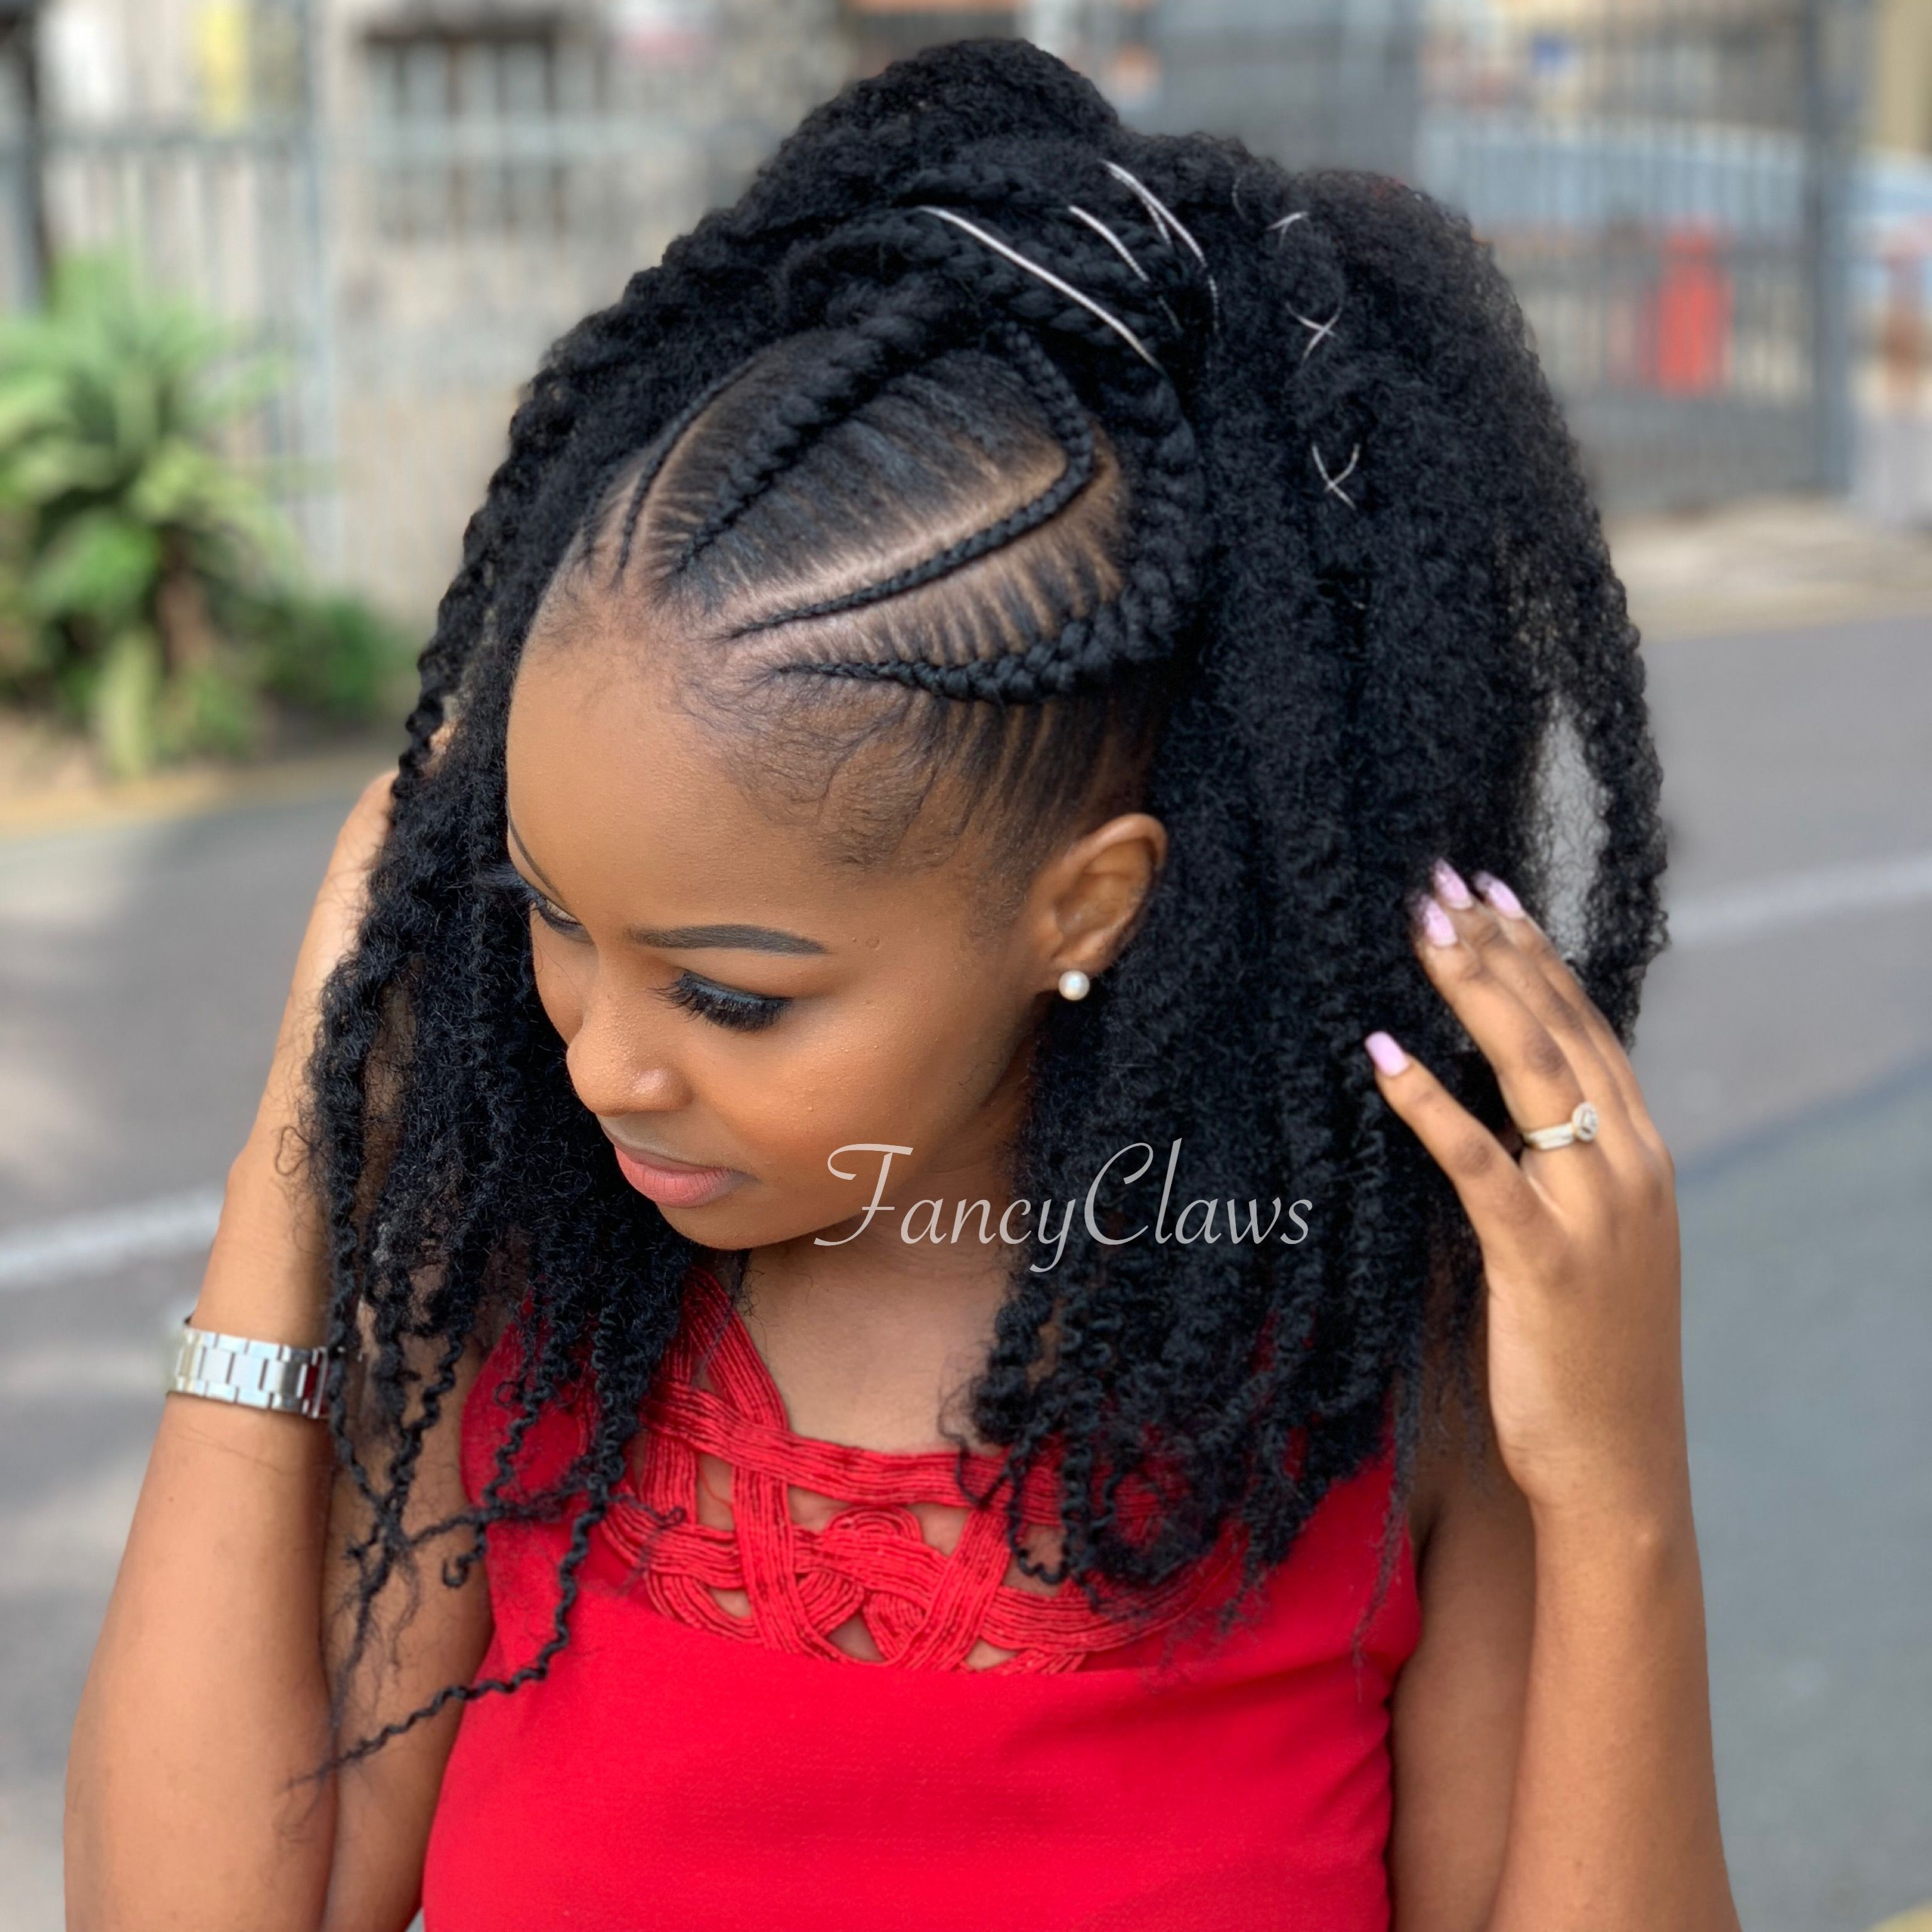 Fancyclaws Salon 15 Hurst Grove Musgrave Durban South Africa 0712093250 Hair Styles Afro Hairstyles African Hair Braiding Styles